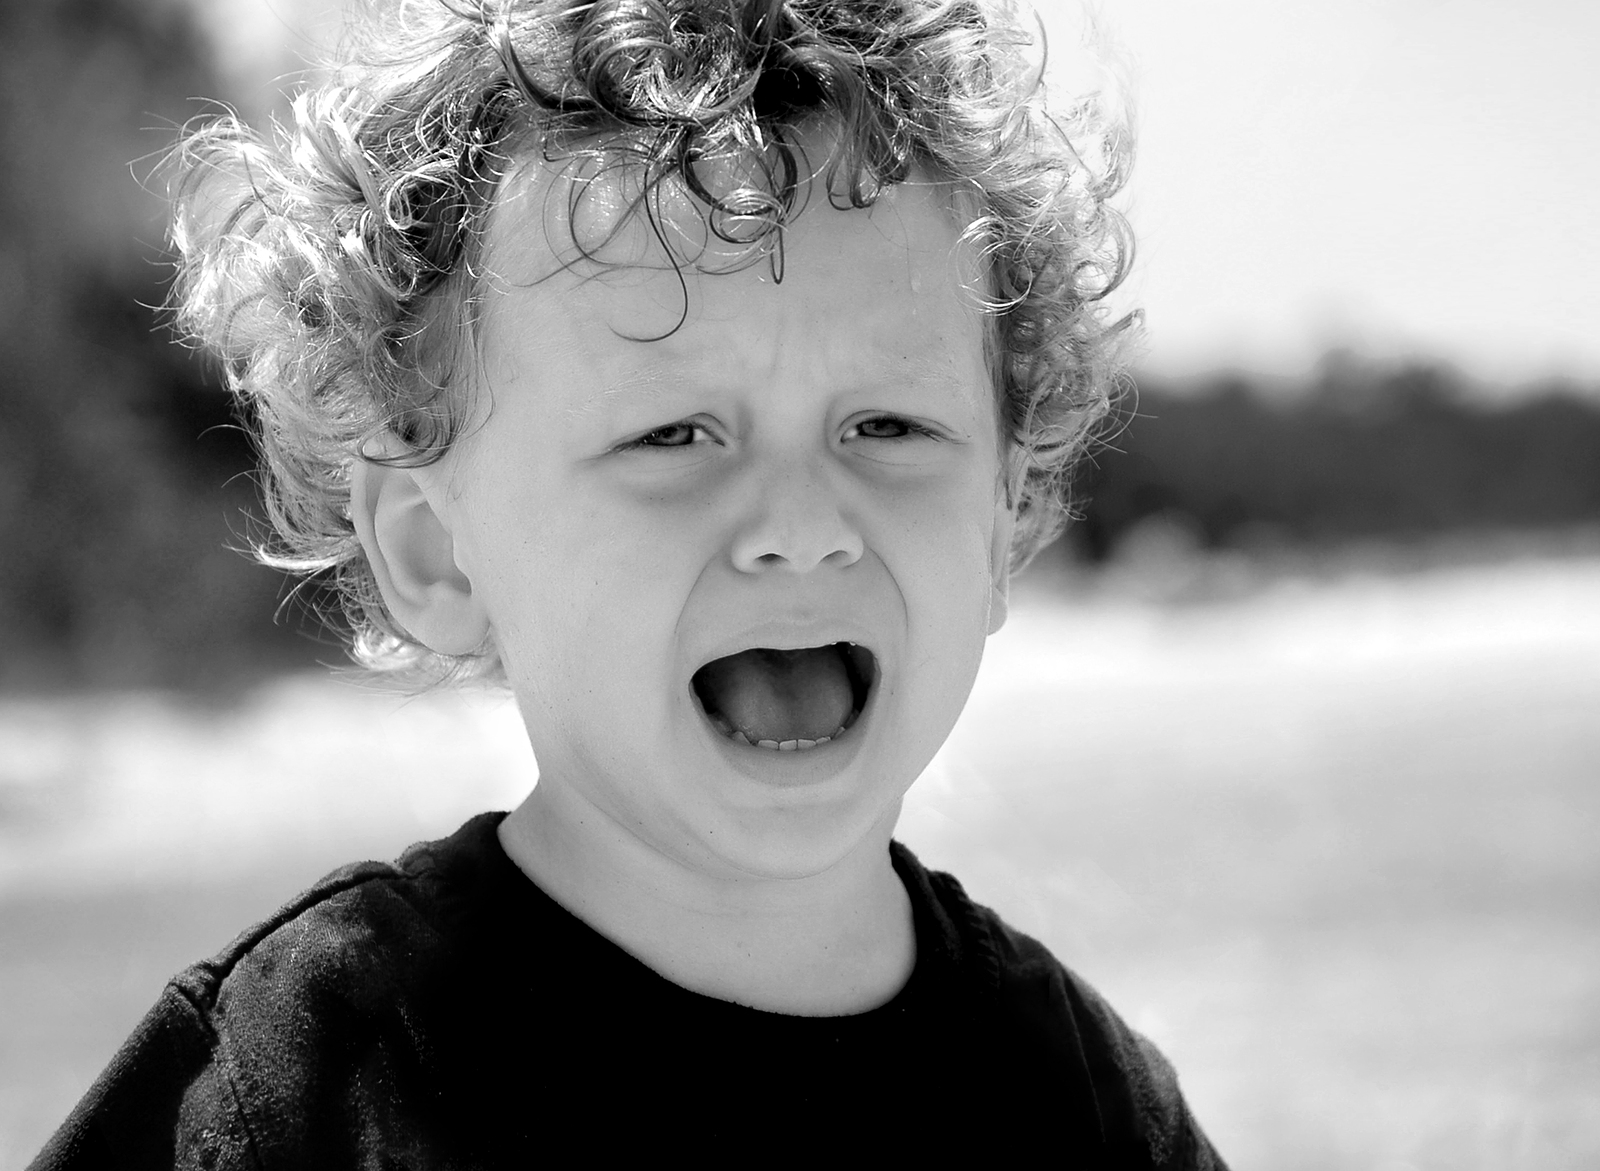 5 Tips for How To Handle Your Toddler's Temper Tantrums (Especially Sleep-Time Tantrums!)